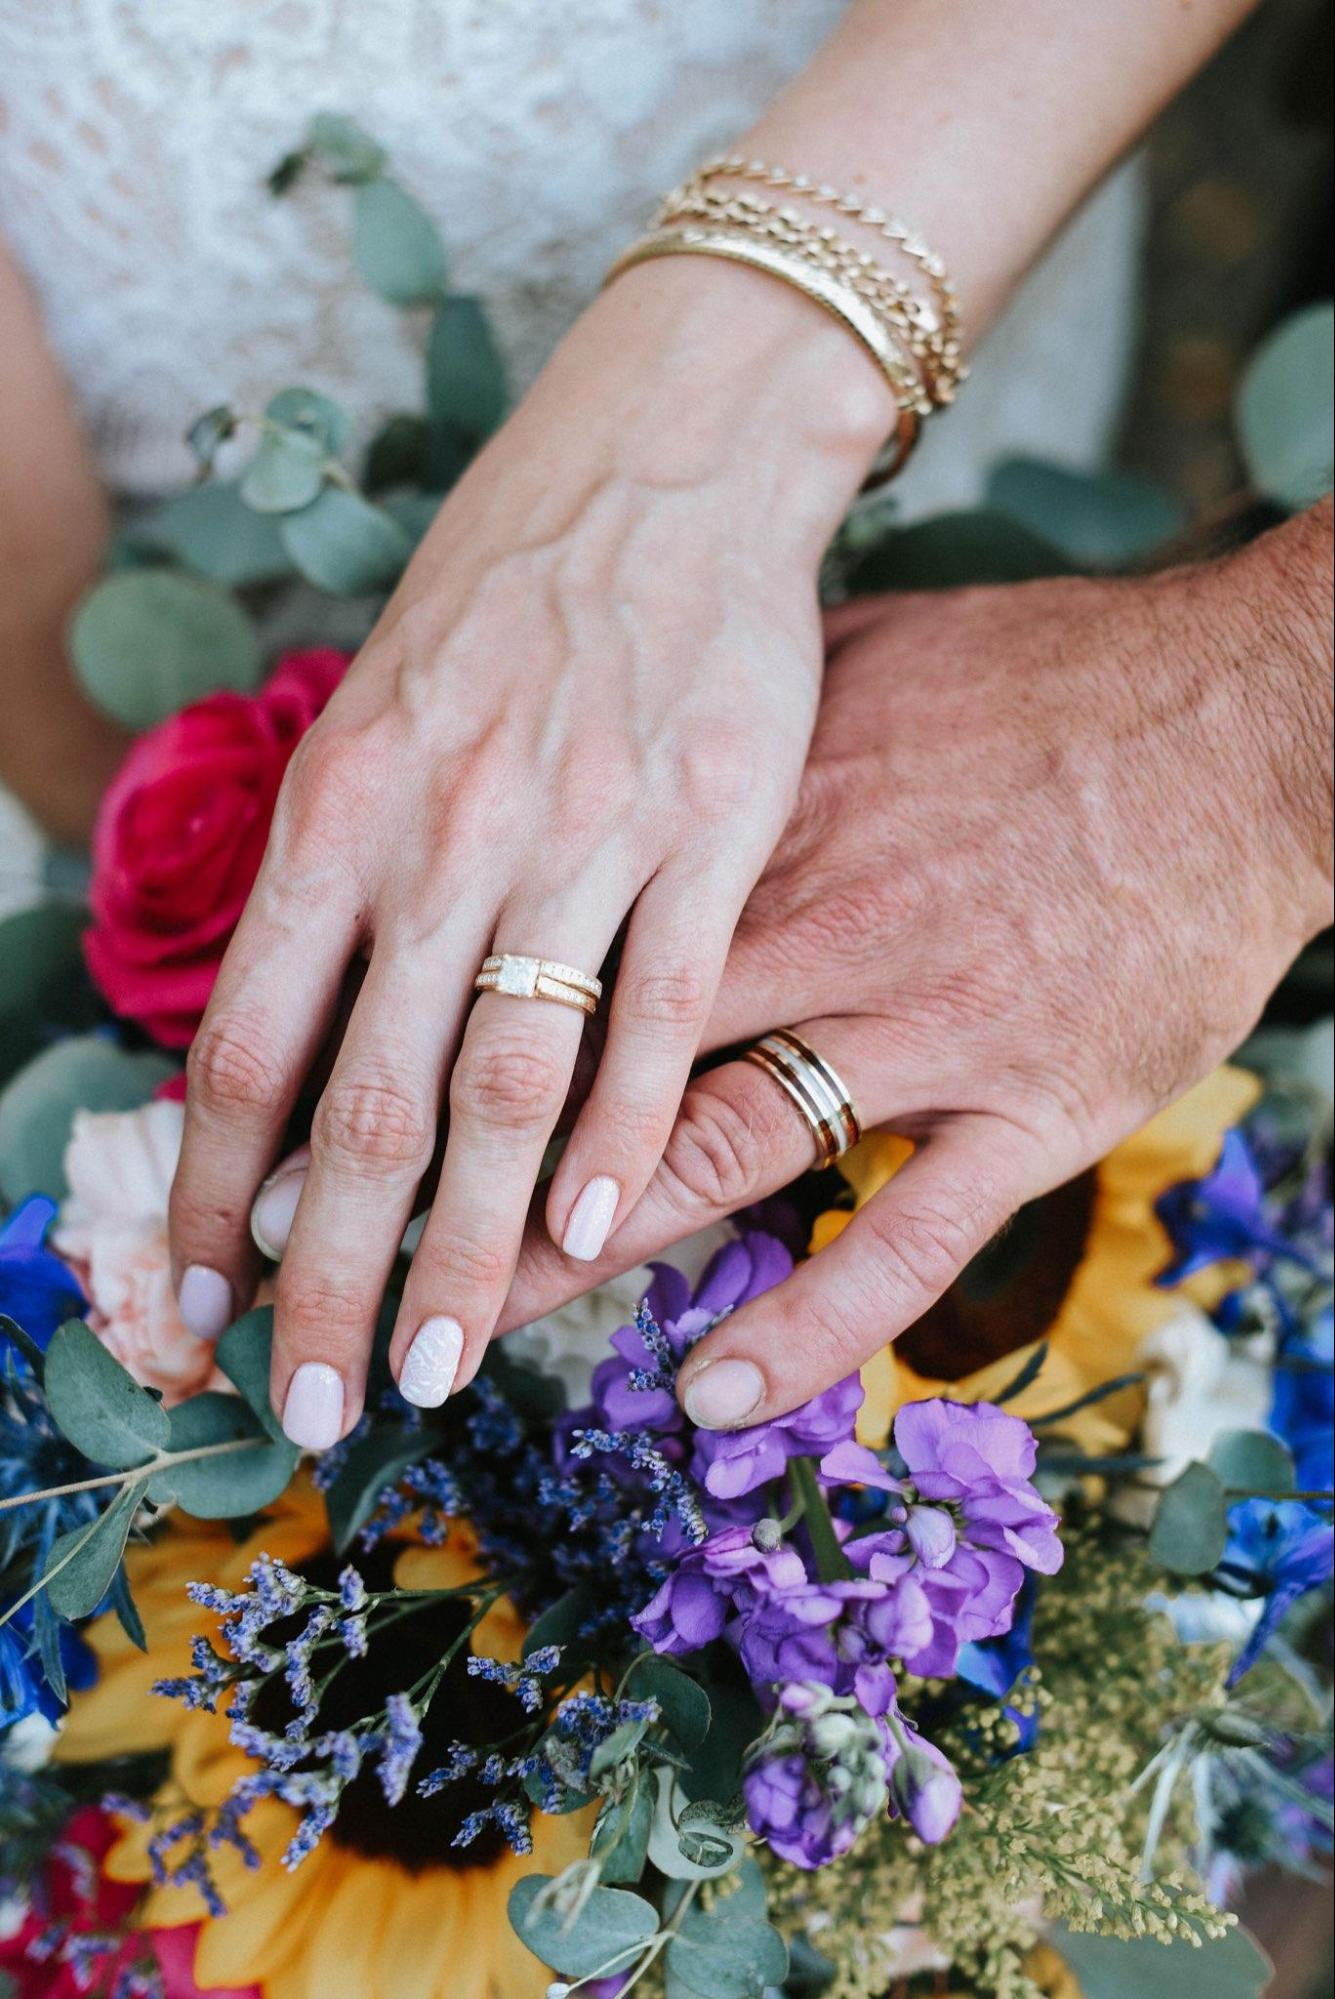 Photo of couple's hands wearing wedding rings